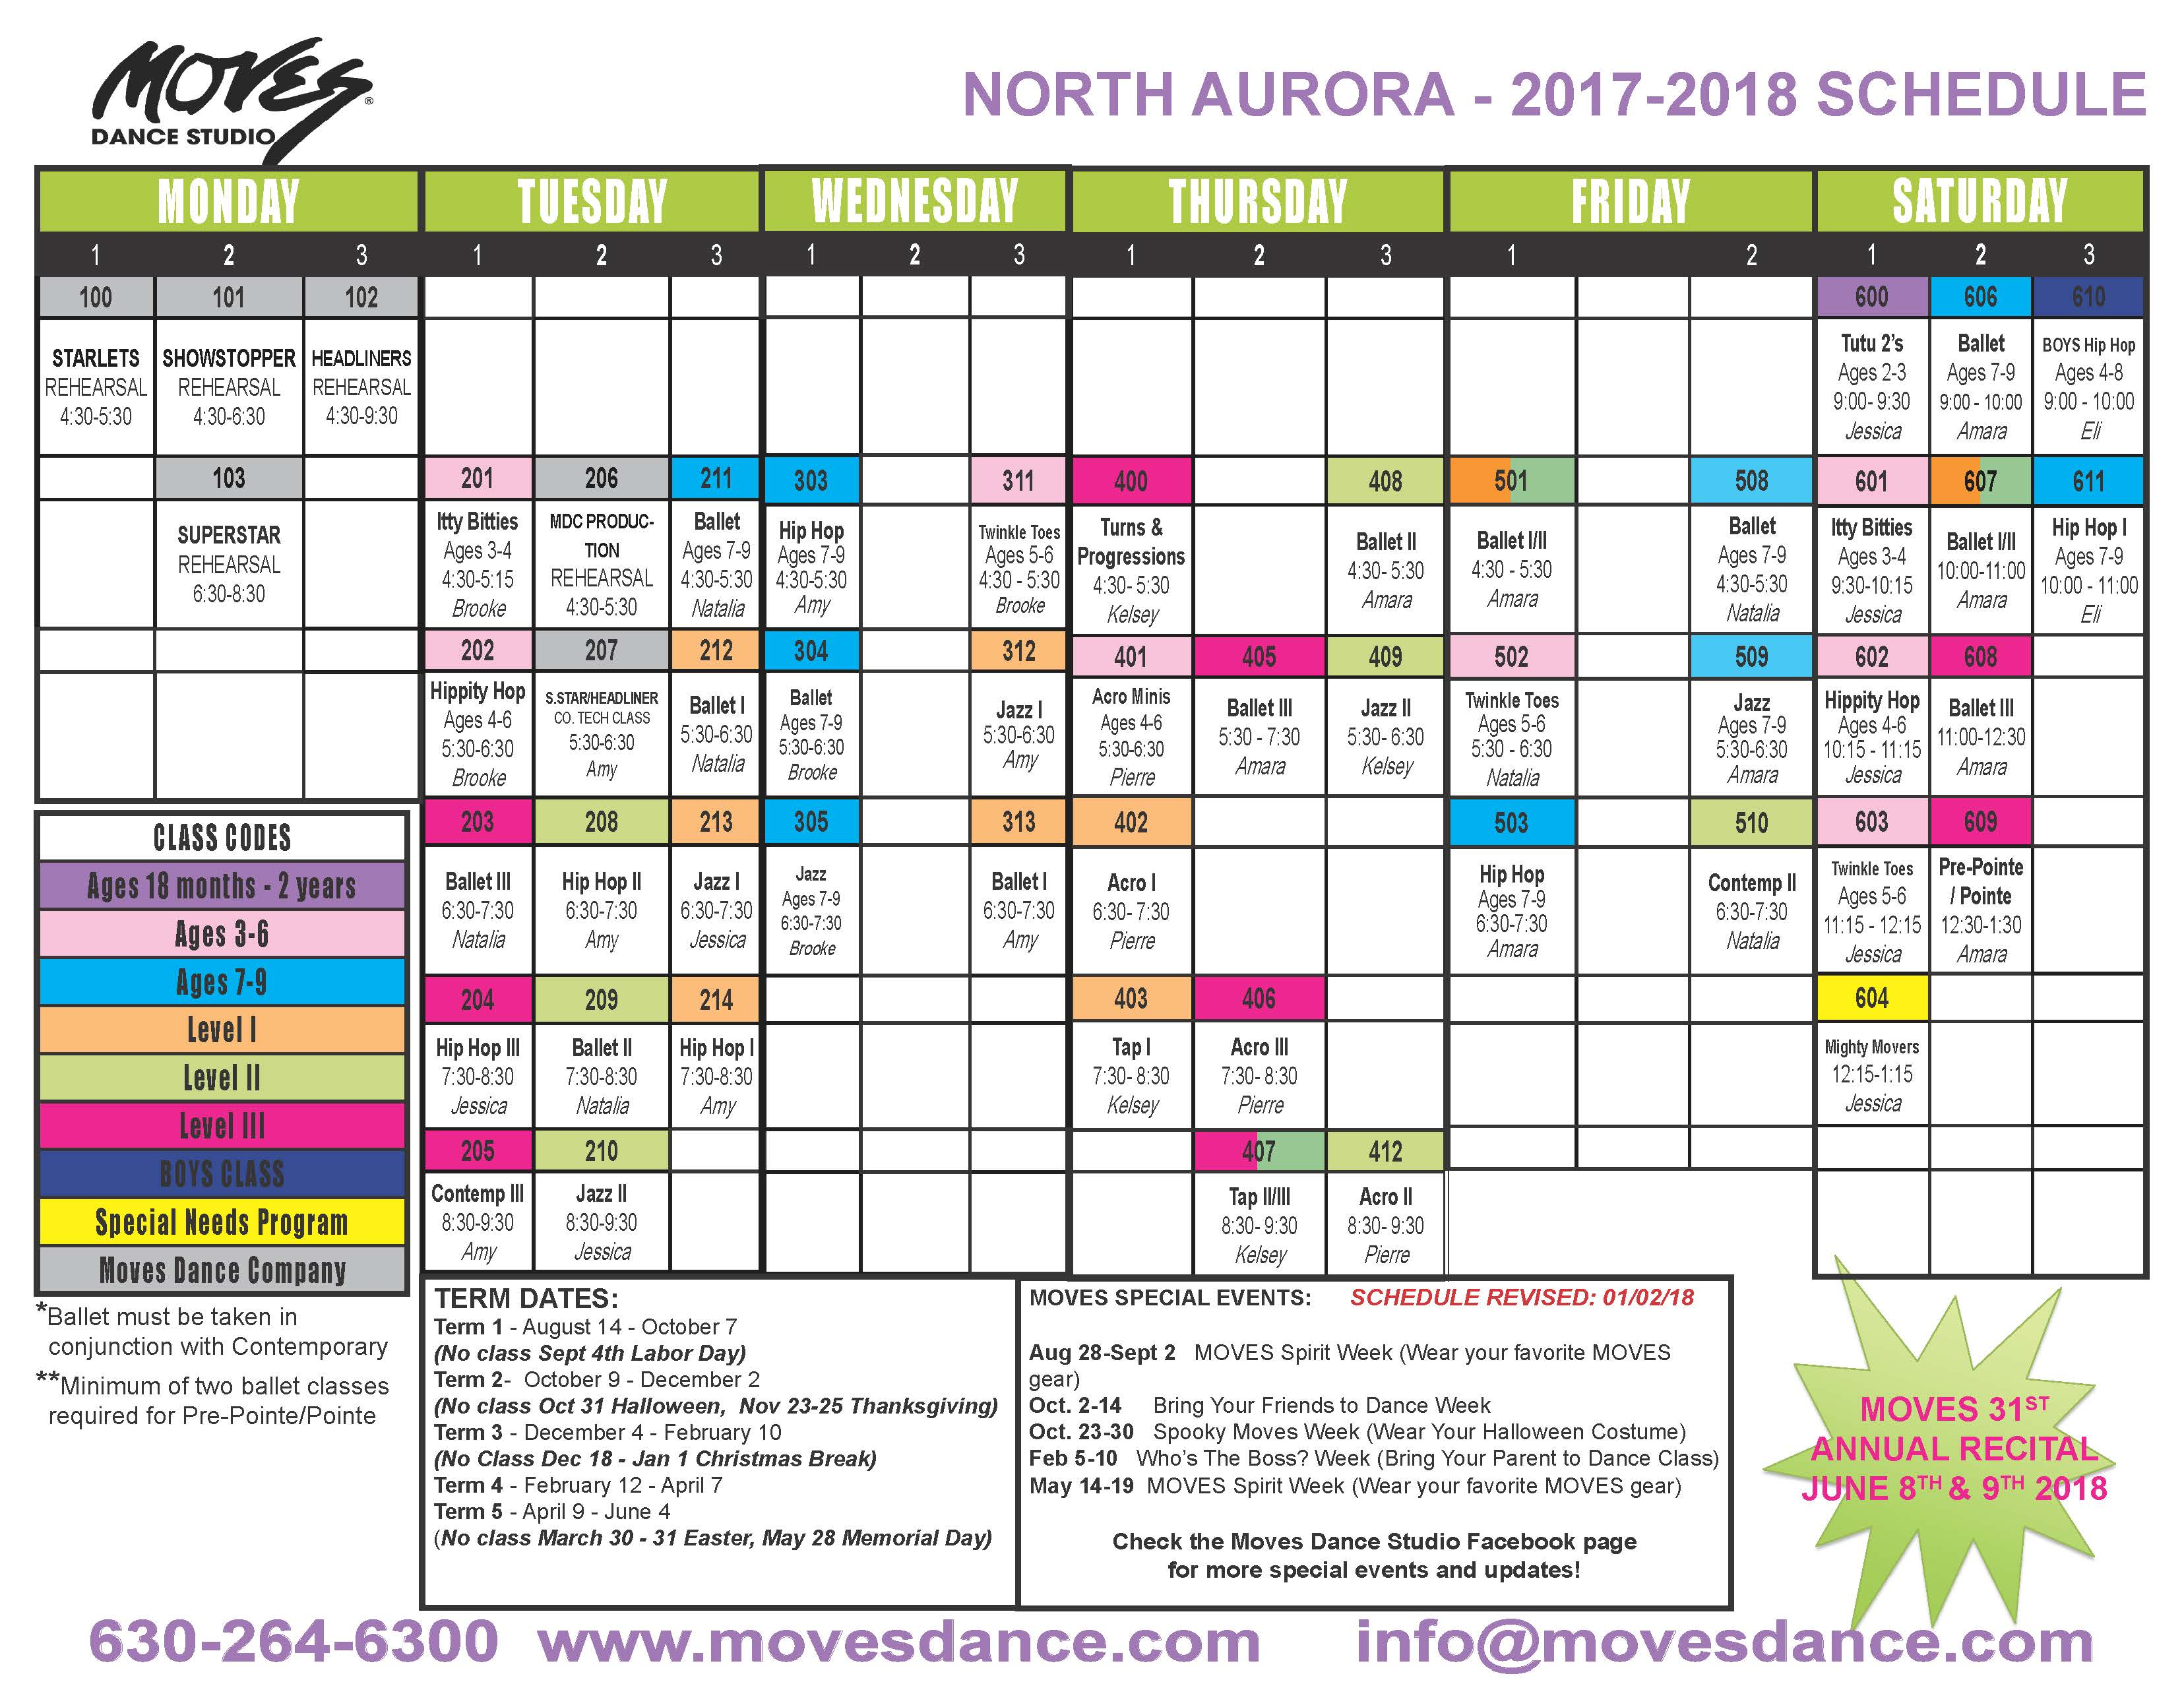 2017-2018 NORTH AURORA SCHEDULE- FINAL - revised January 2